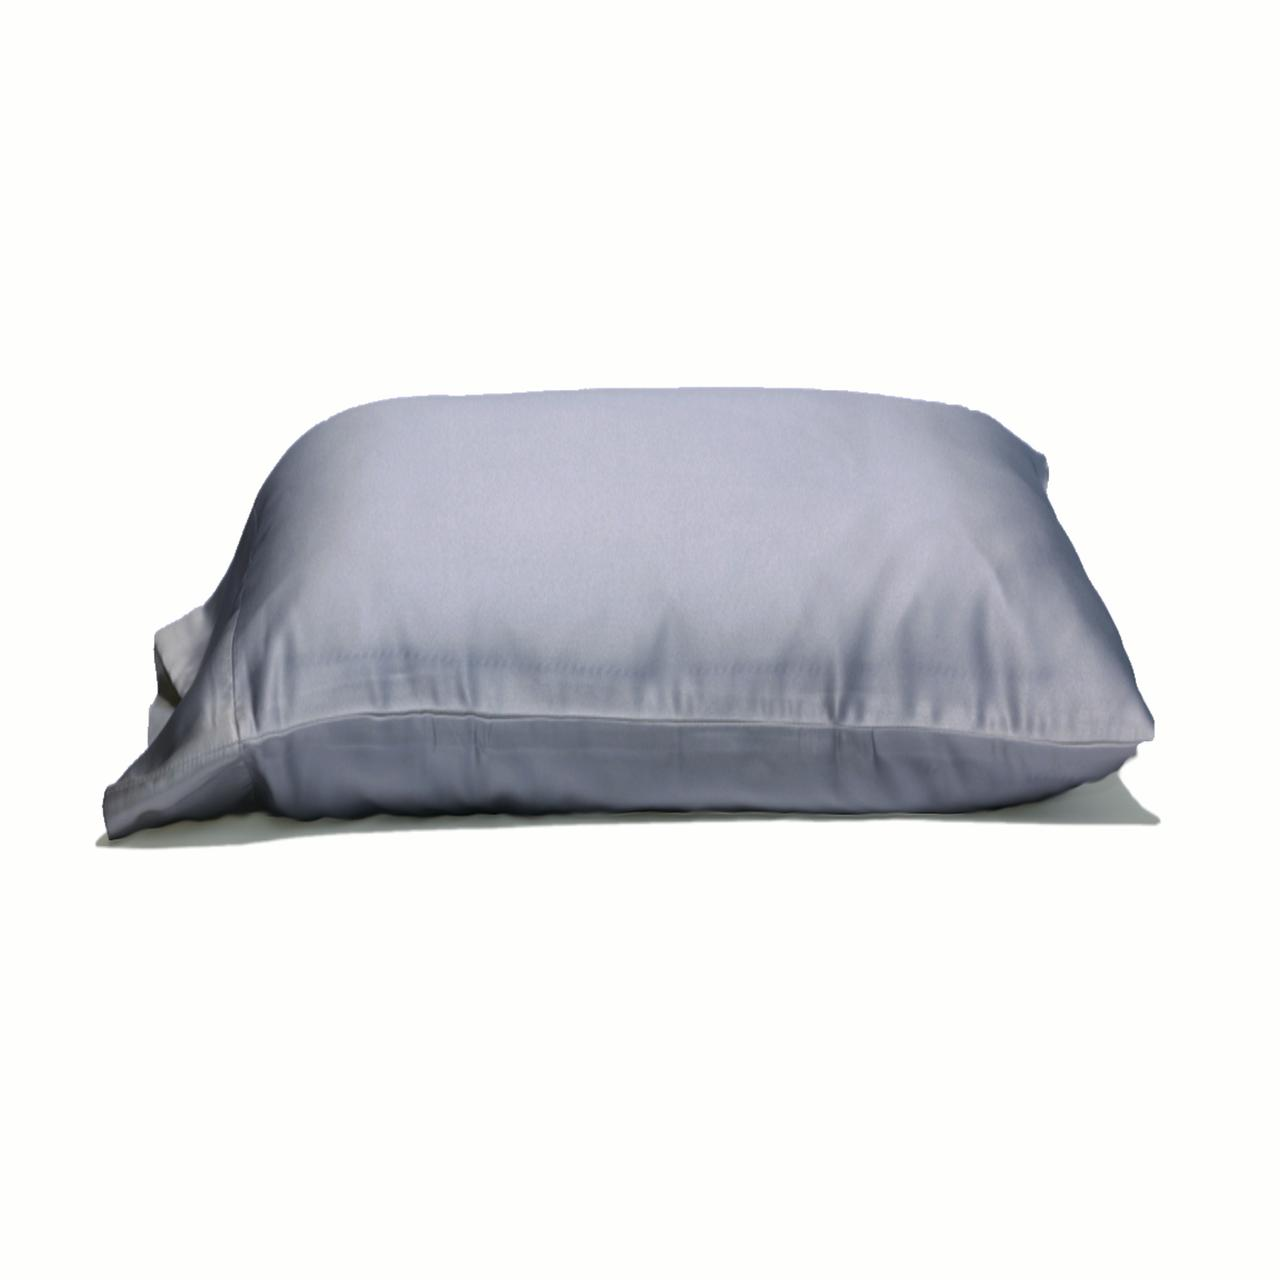 gravity sleep oversize pillow case fits even the fluffiest pillows including the pancake pillow sleeve style extra tall pillowcase luxury 100